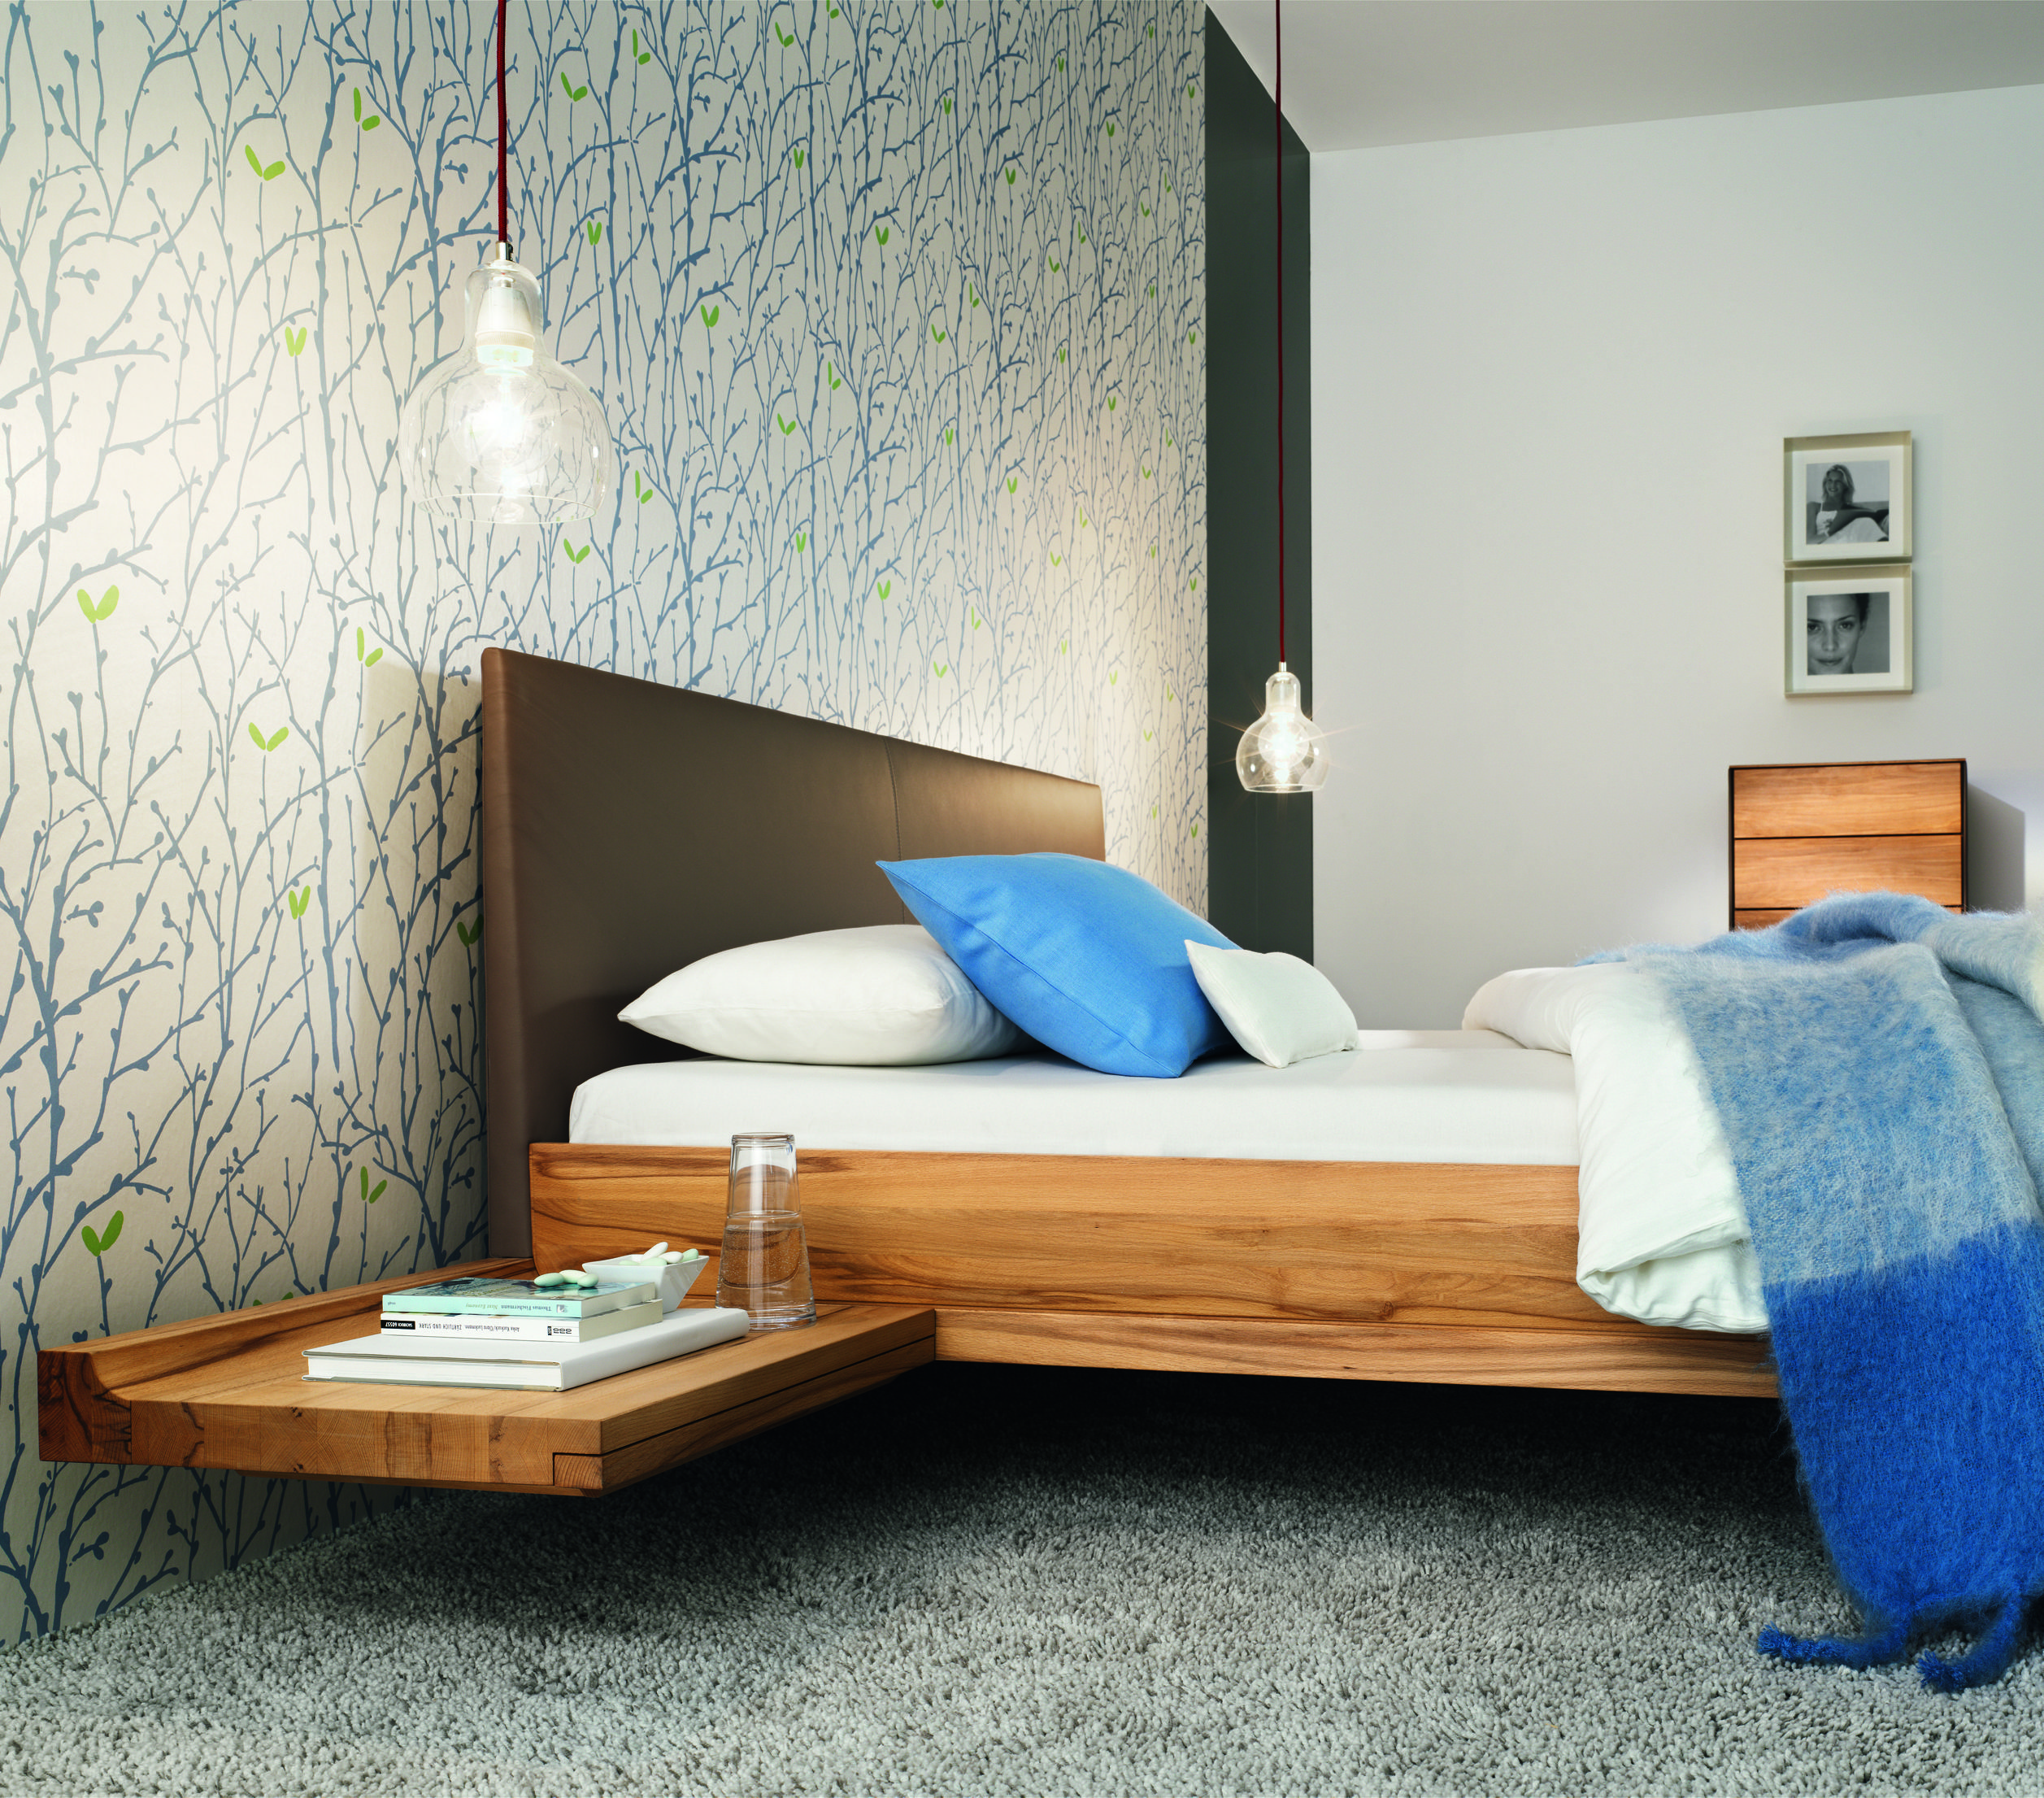 Non Toxic Bedroom Furniture Team 7 Riletto Bed Wood Headboard Leather Sides Wood Beds